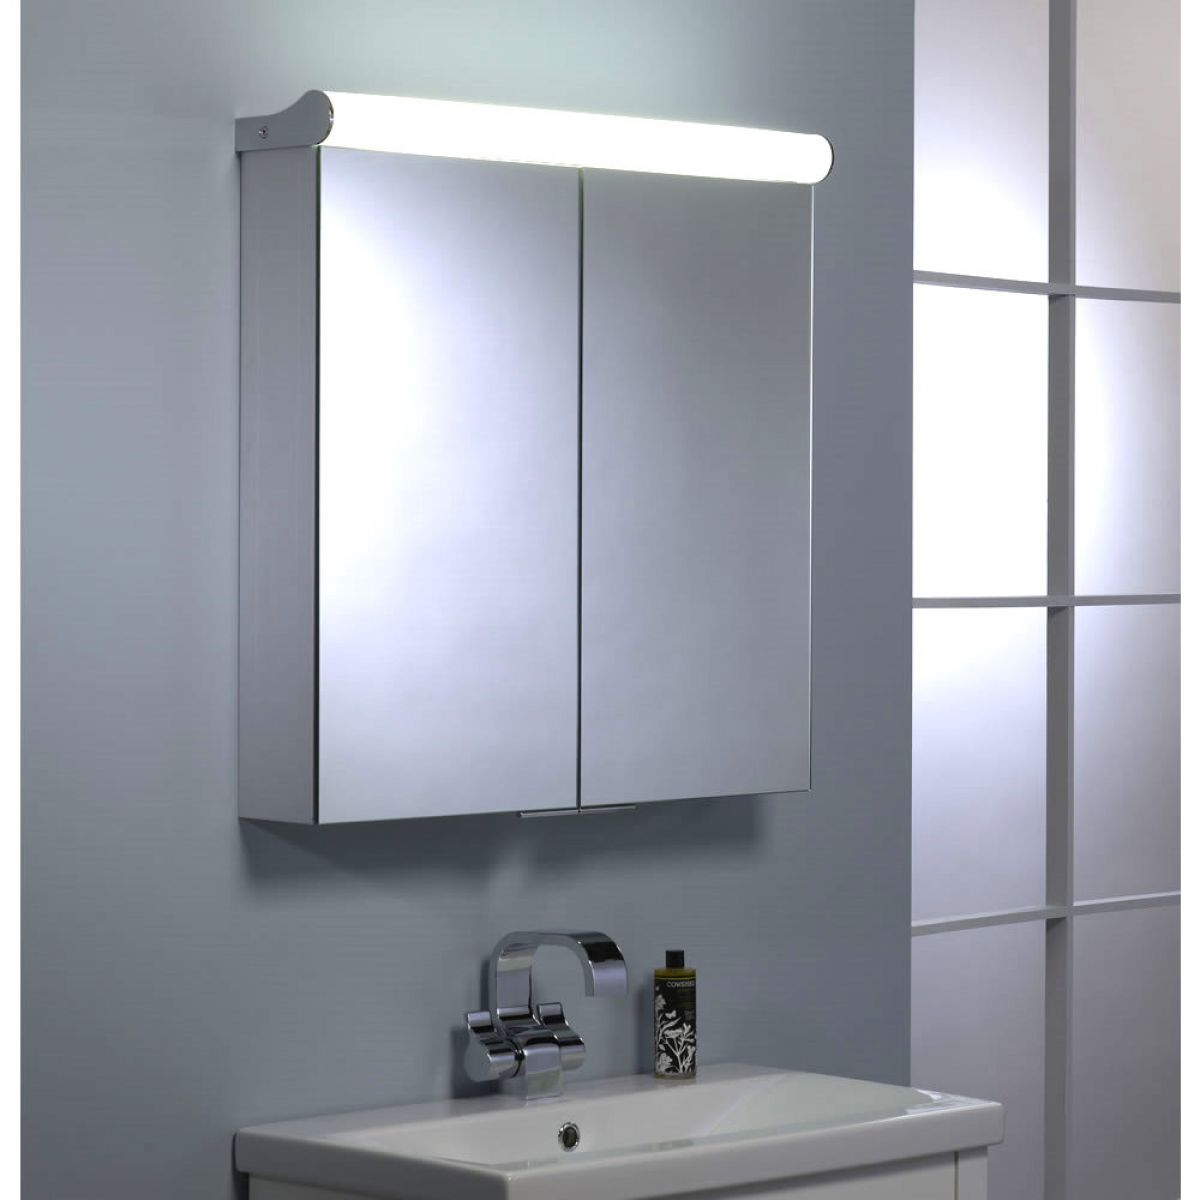 roper rhodes ascension latitude double door illuminated cabinet uk bathrooms